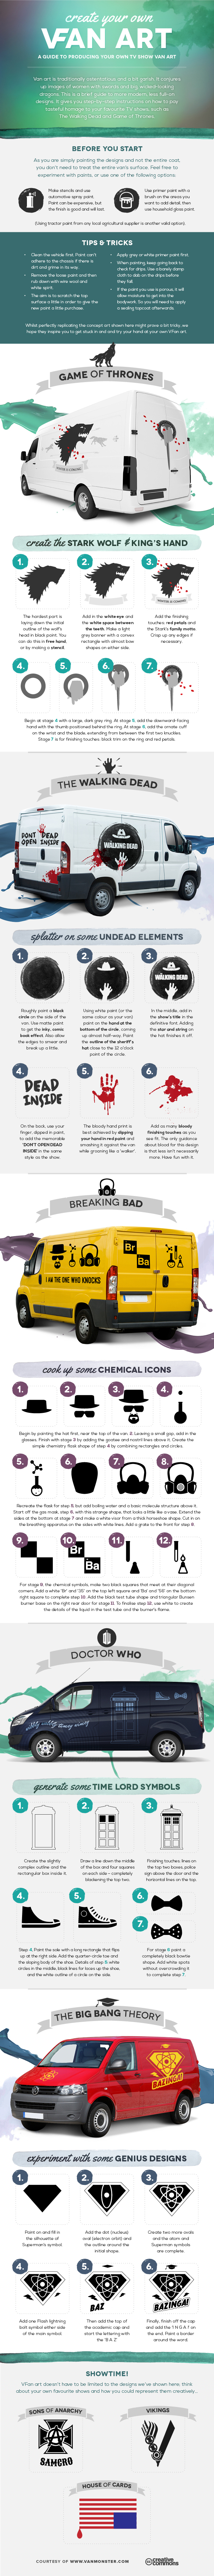 Van Art infographic